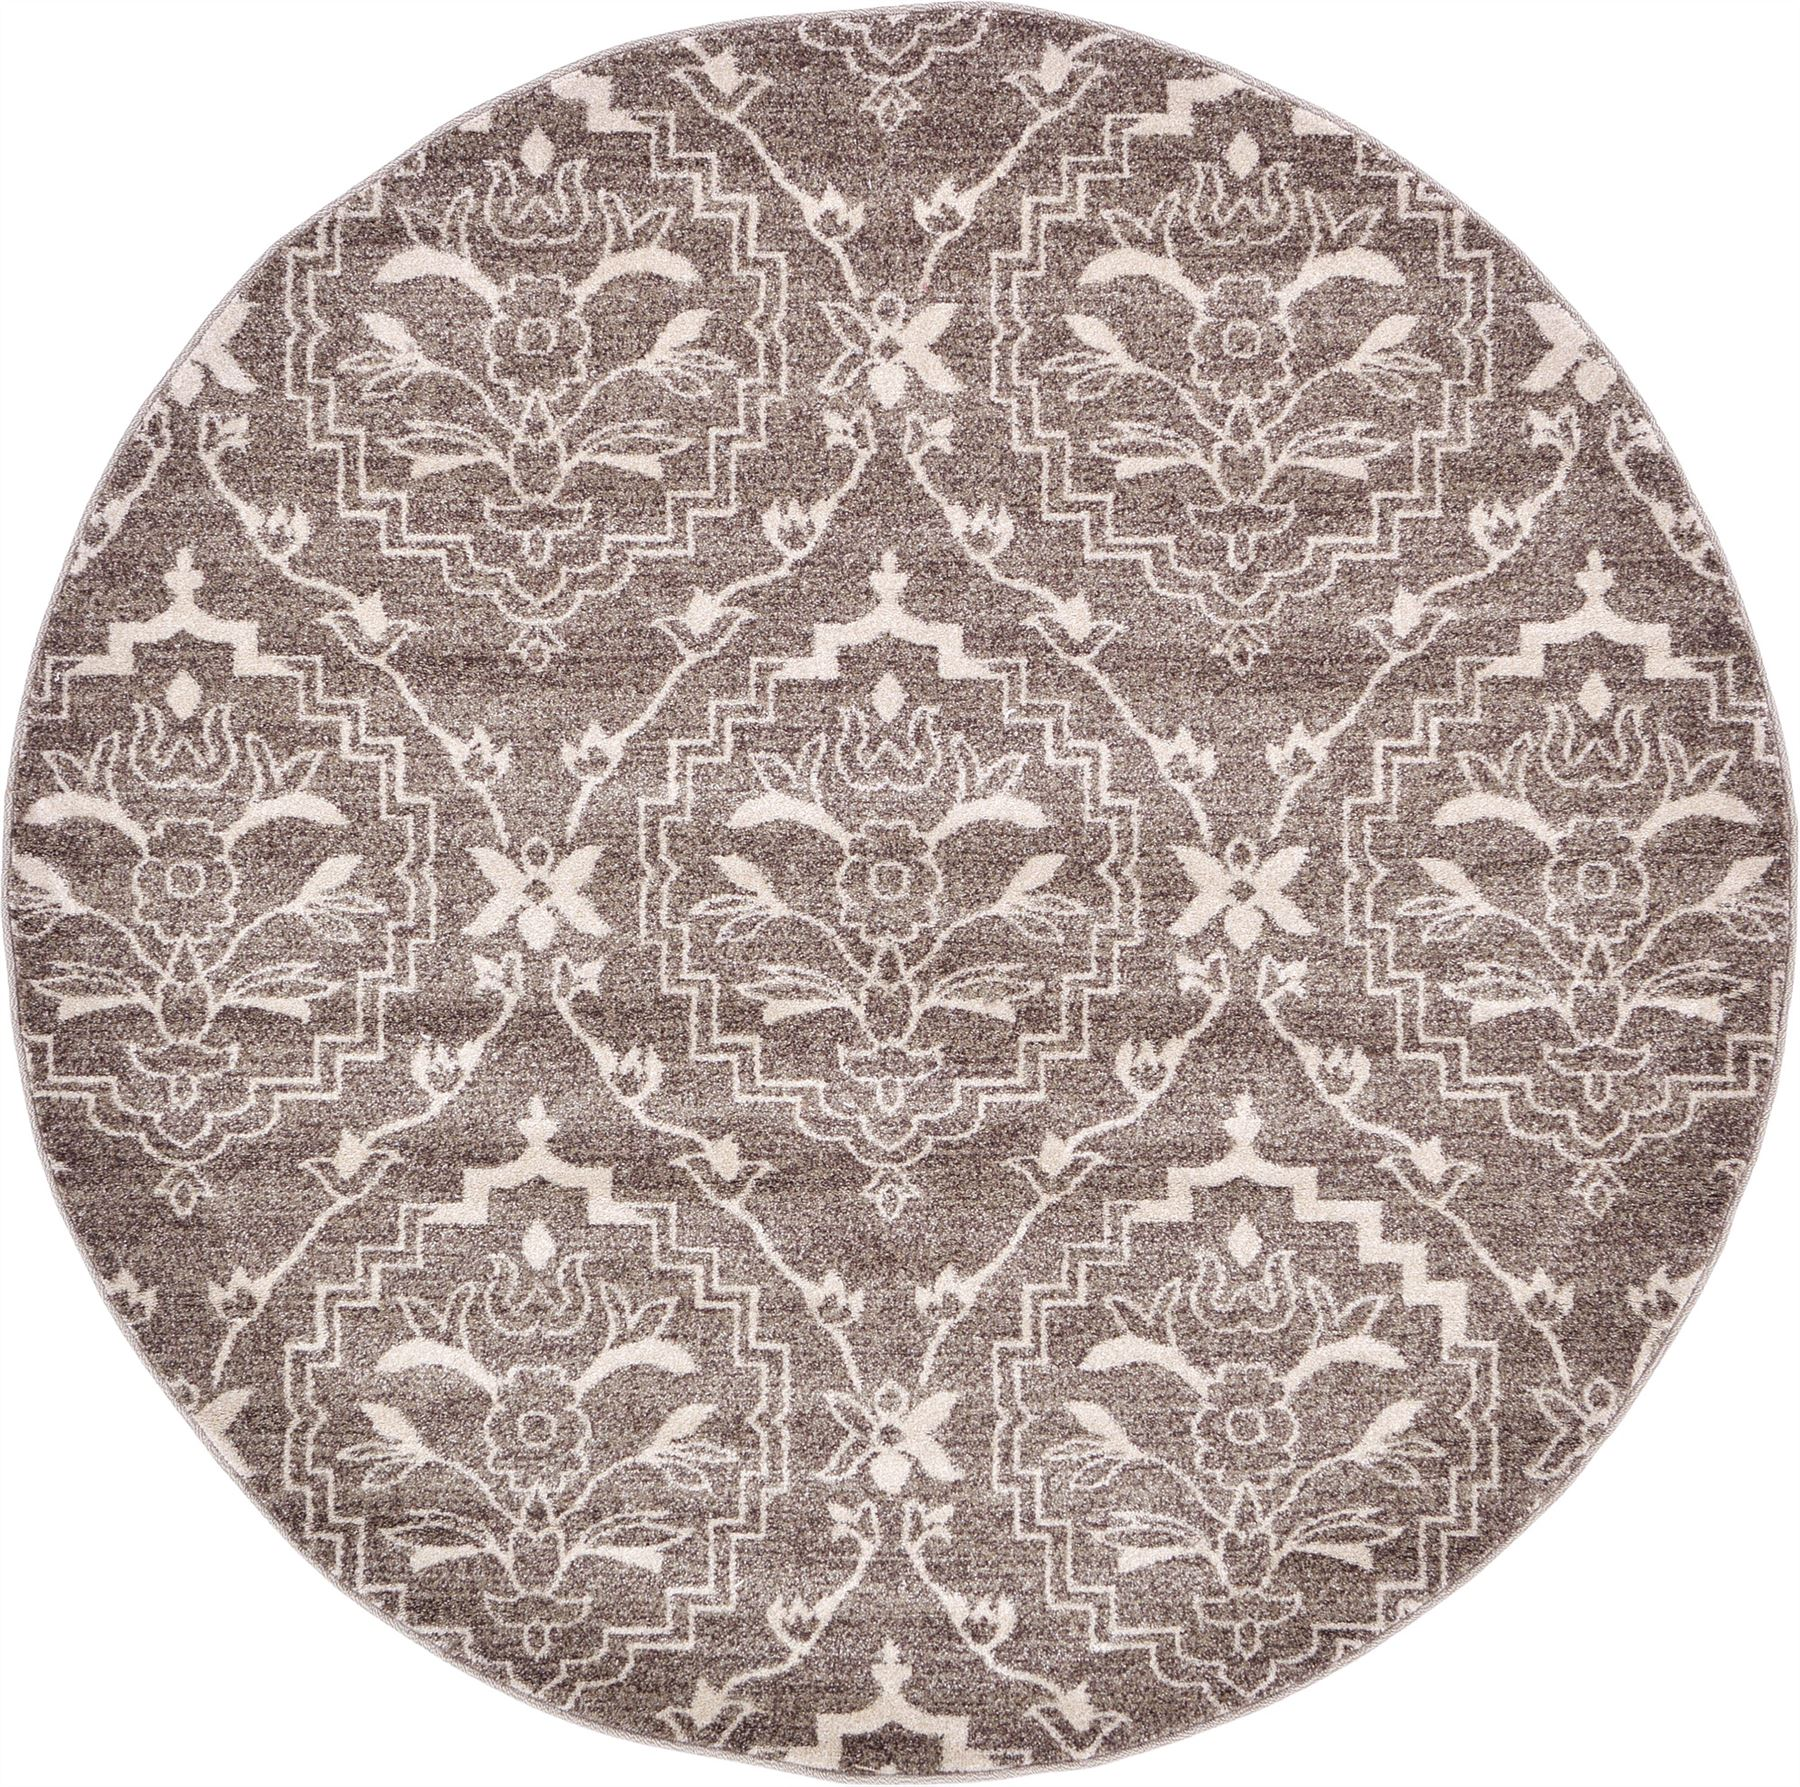 Modern damask design rugs area rug floor rug contemporary for Modern design area rugs